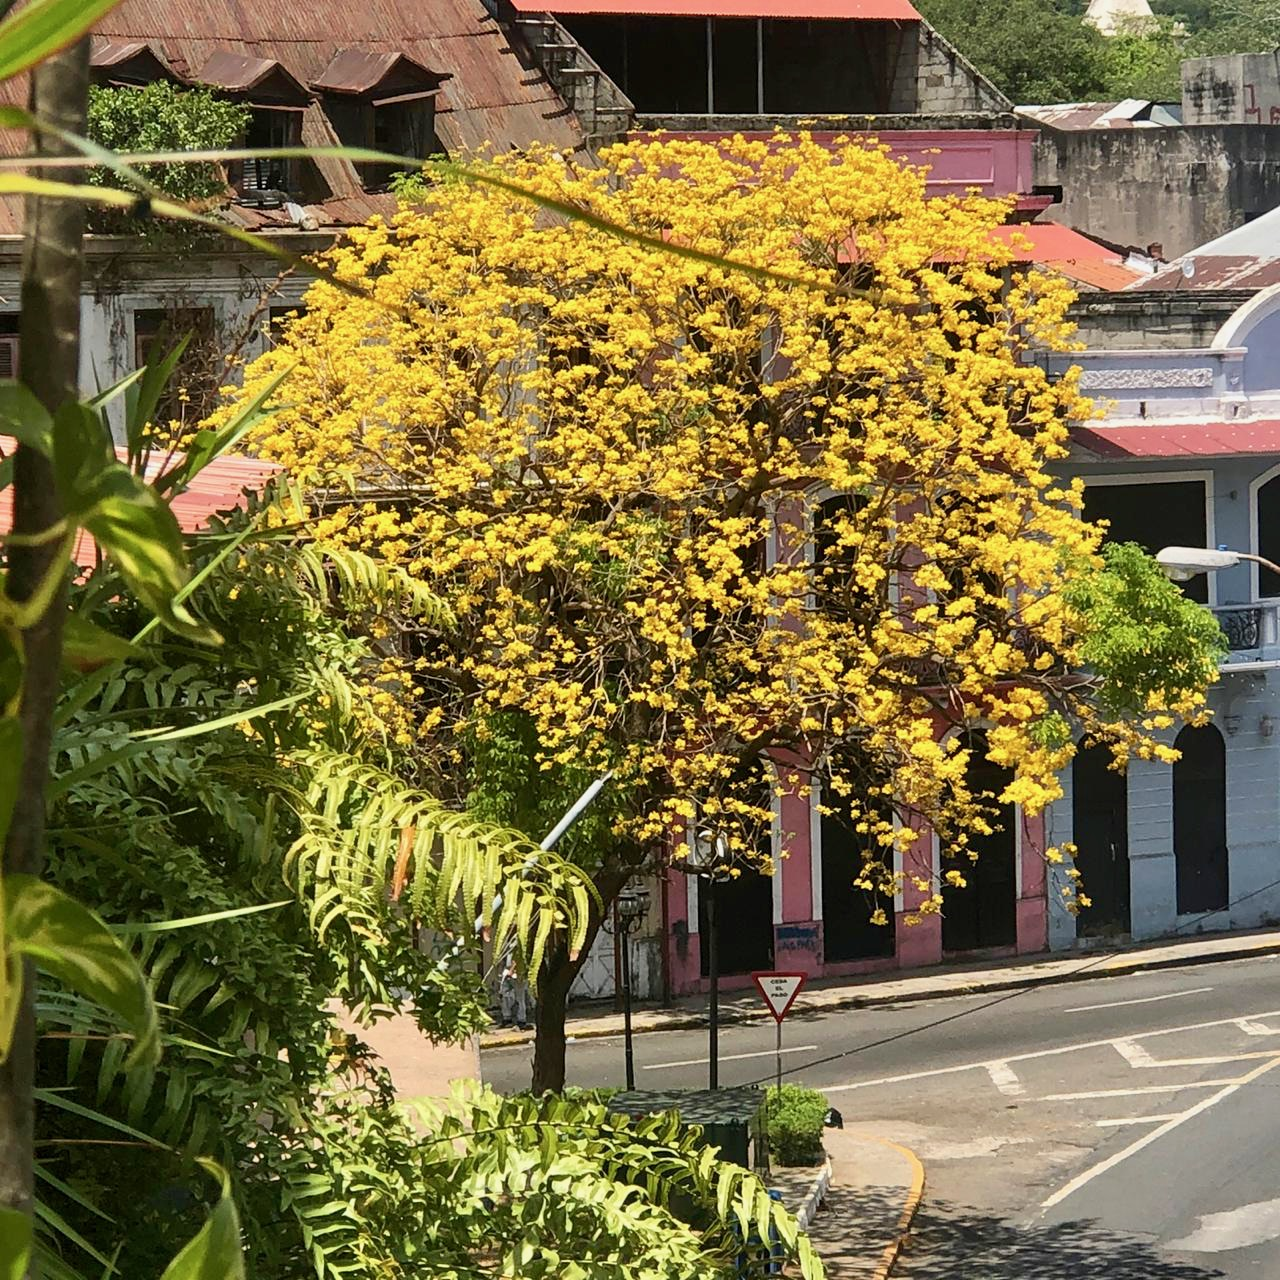 Guayacanes in Panama usually bloom in March